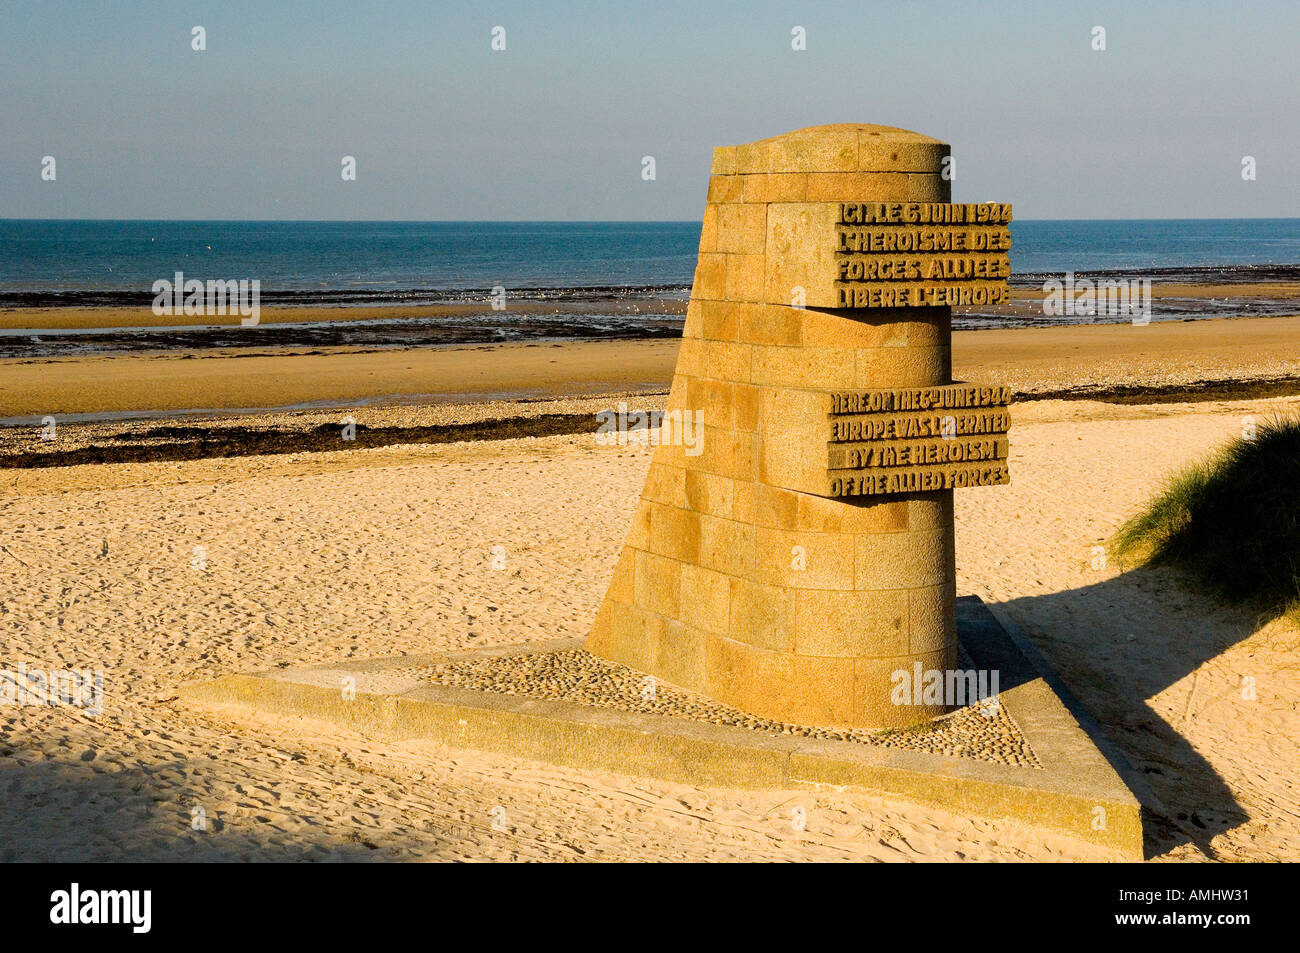 juno beach memorial near the juno beach centre at courseulles sur mer stock photo royalty free. Black Bedroom Furniture Sets. Home Design Ideas